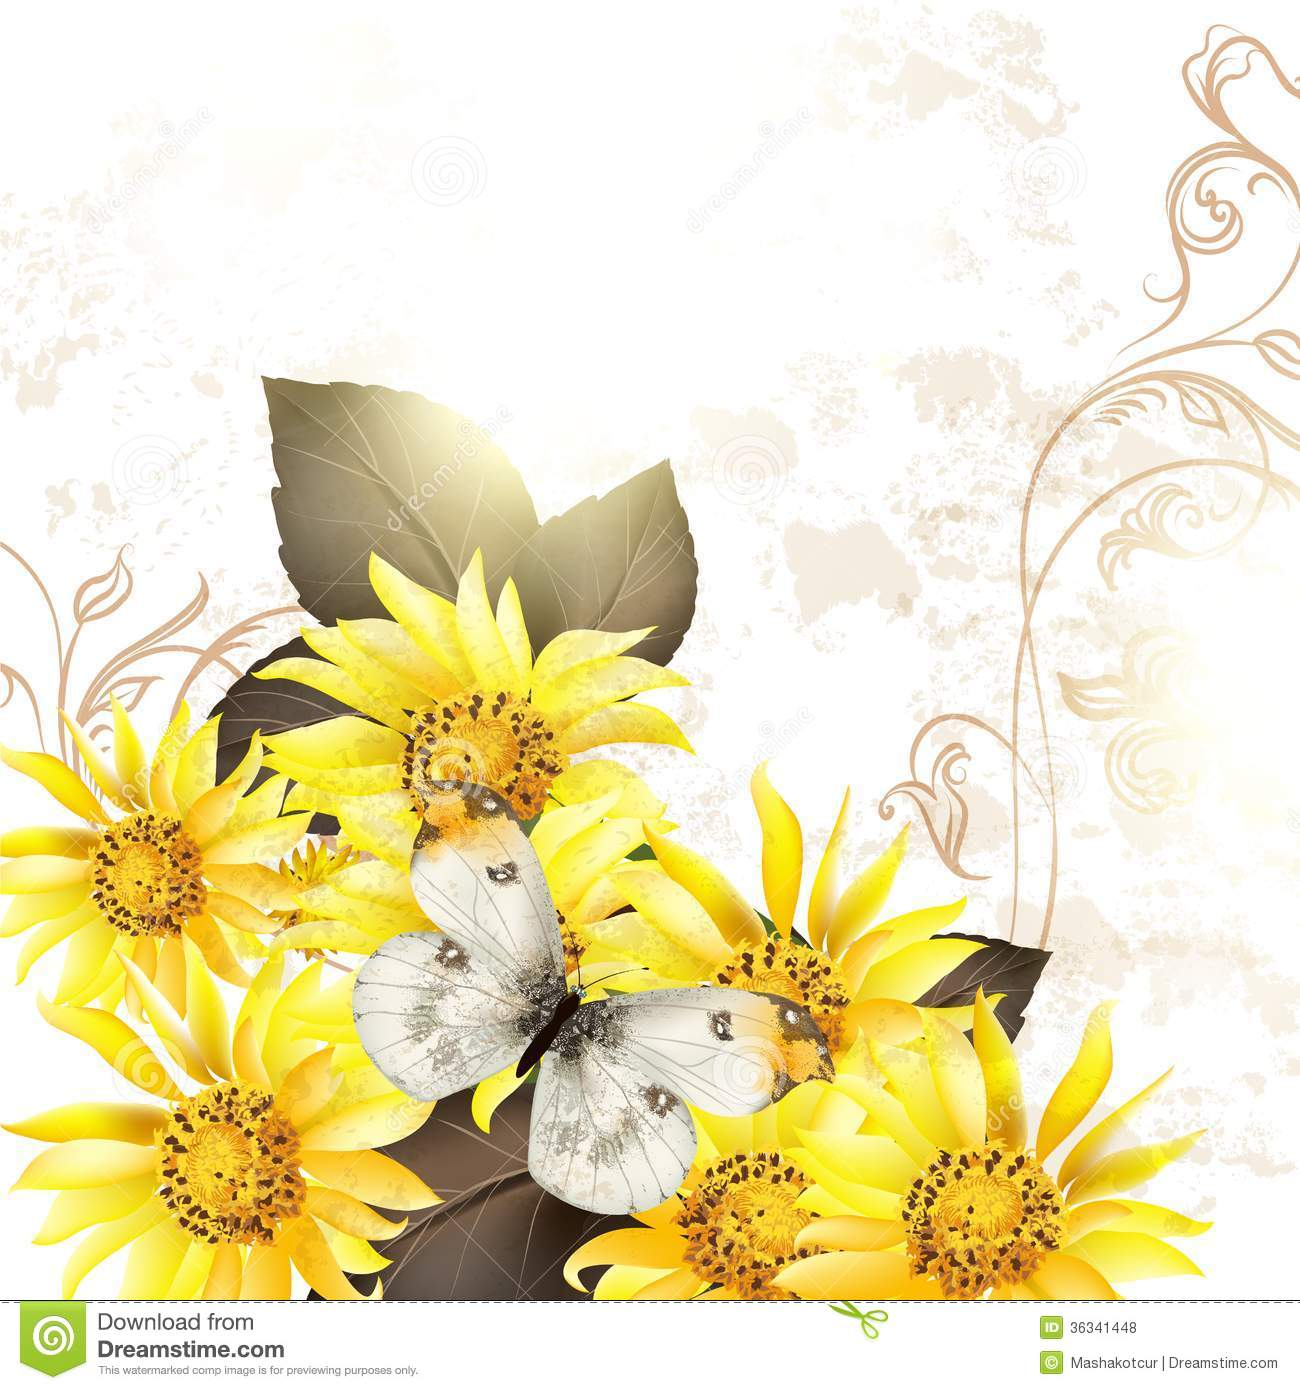 Grunge Vector Background With Yellow Flowers For Design